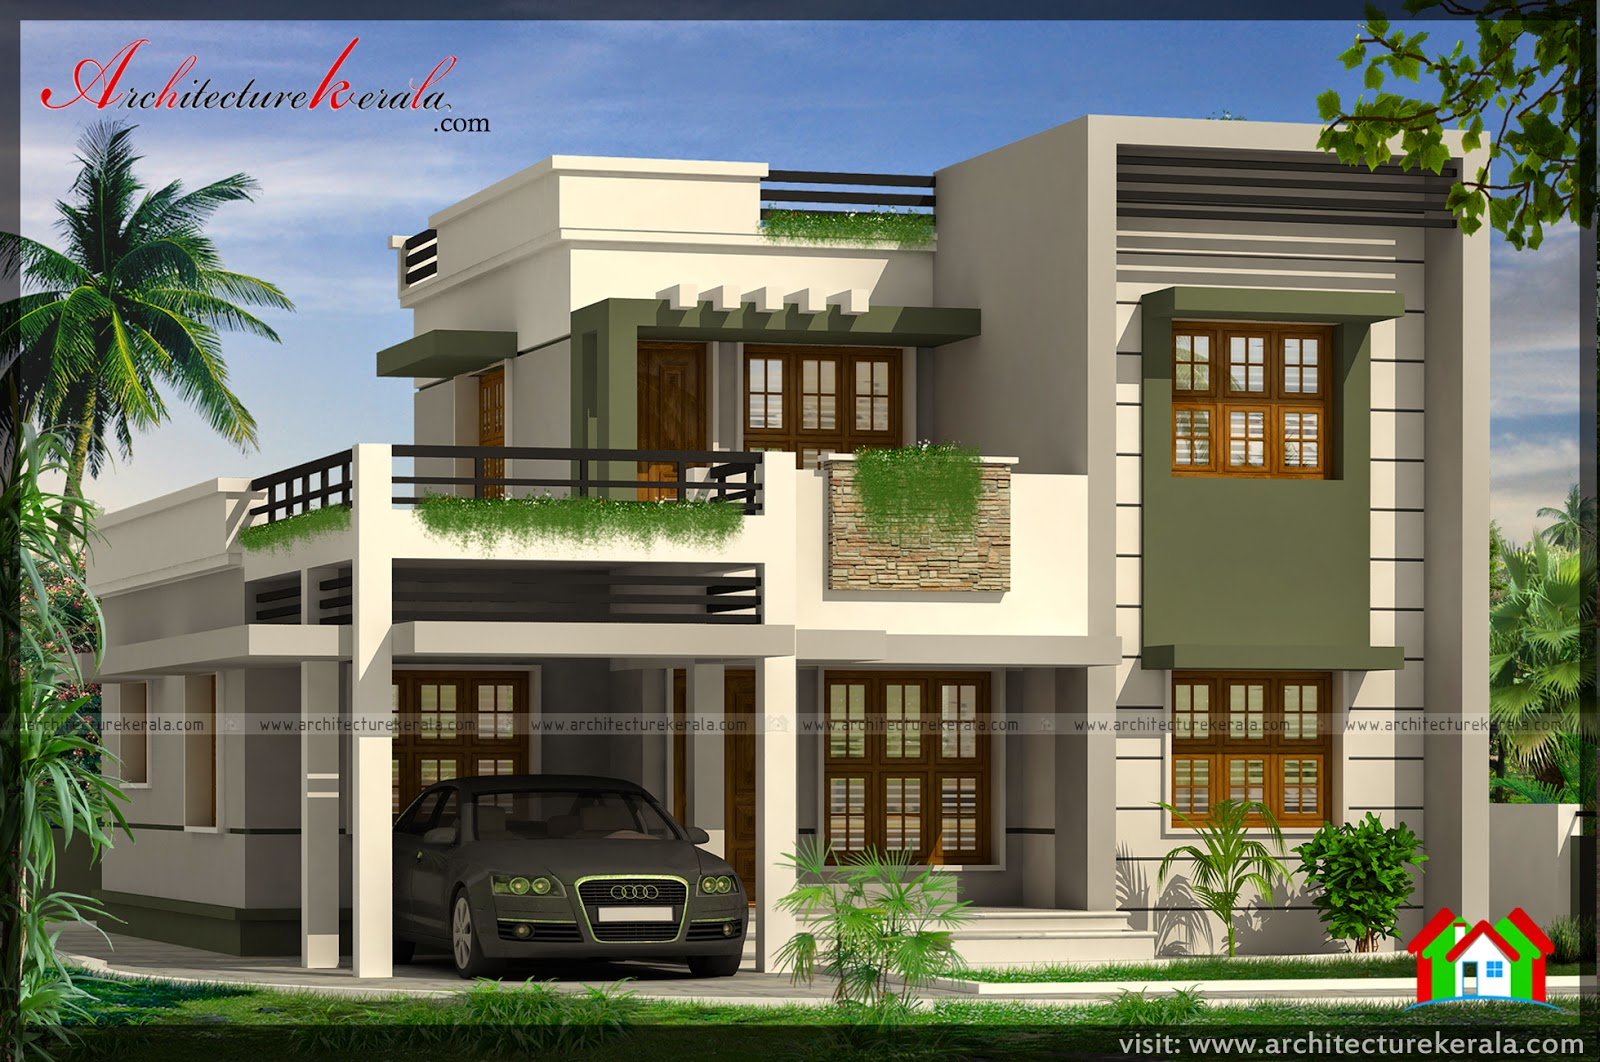 2 Bedroom Apartment Floor Plans India - Decorating Interior Of Your on kerala villa elevation, kerala model house design, kerala house floor plans, kerala house plans and elevations,